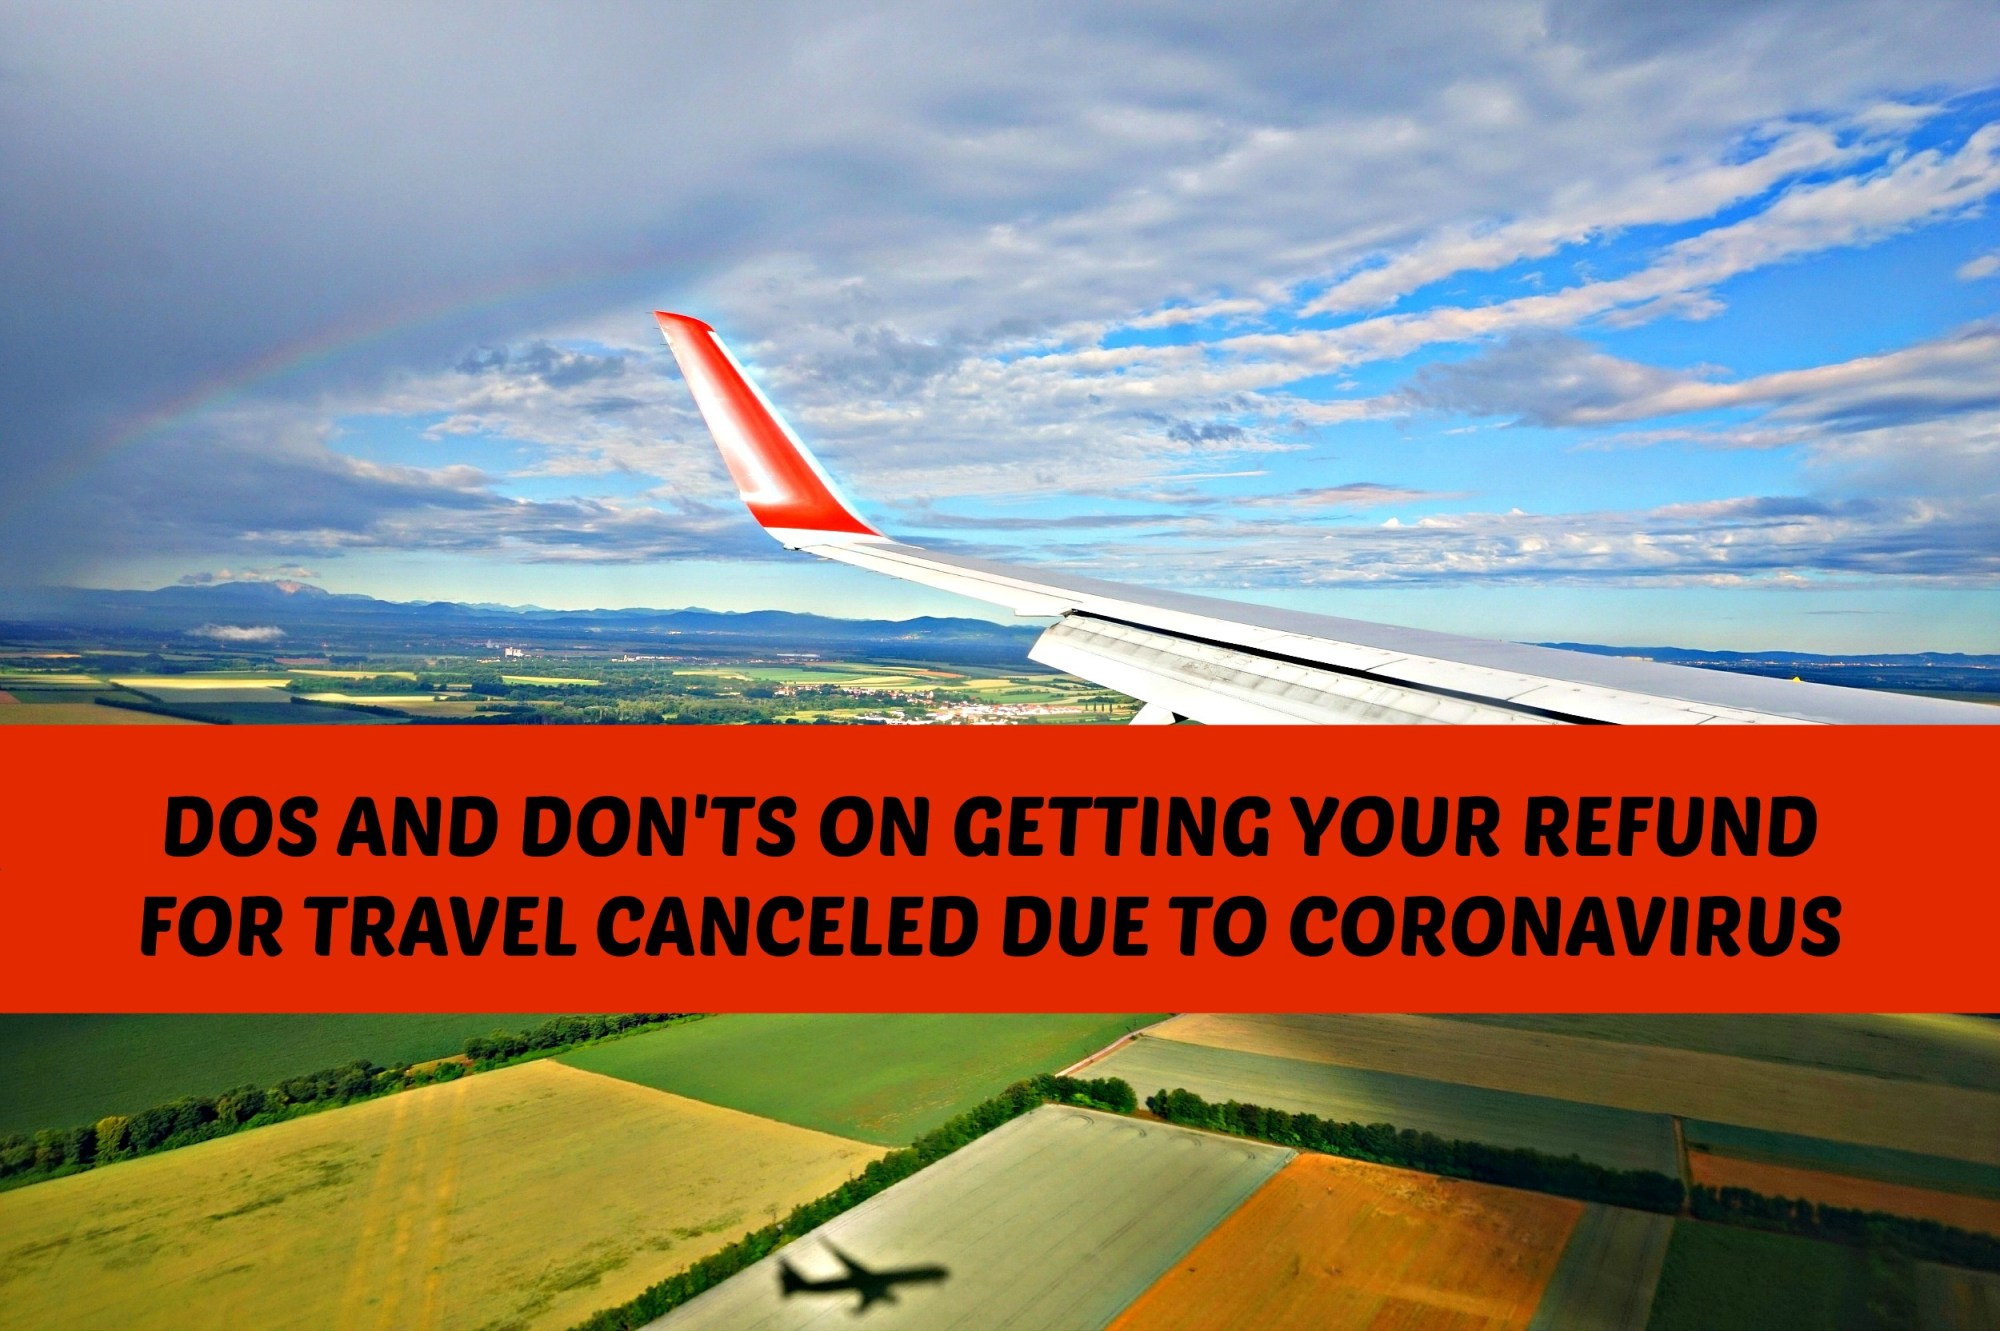 Travel refund during coronavirus pandemic.